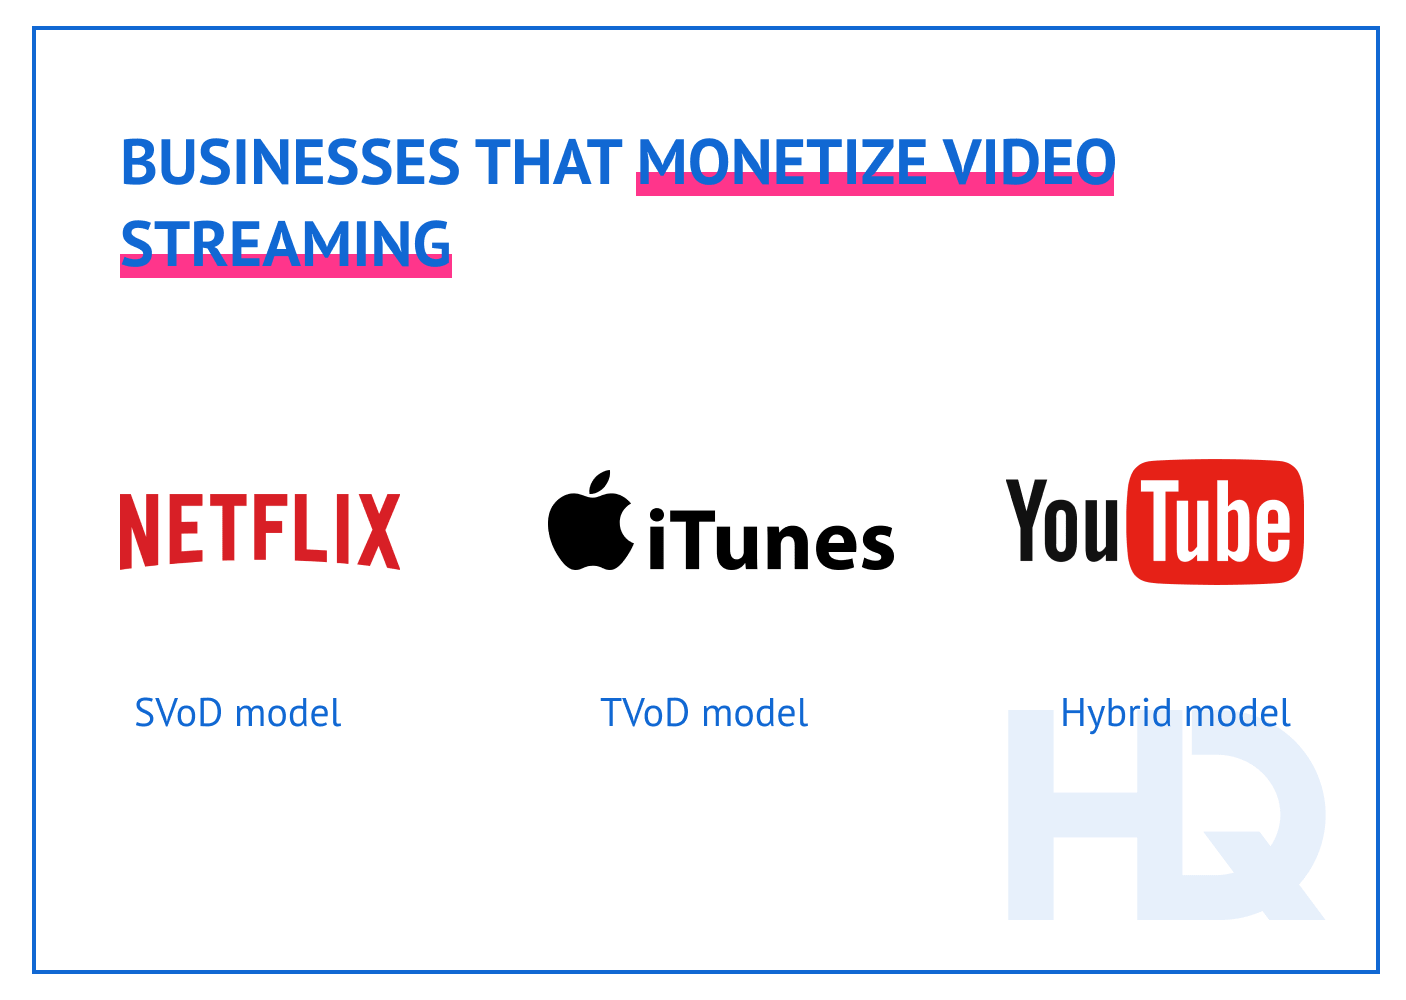 What businesses monetize video streaming?